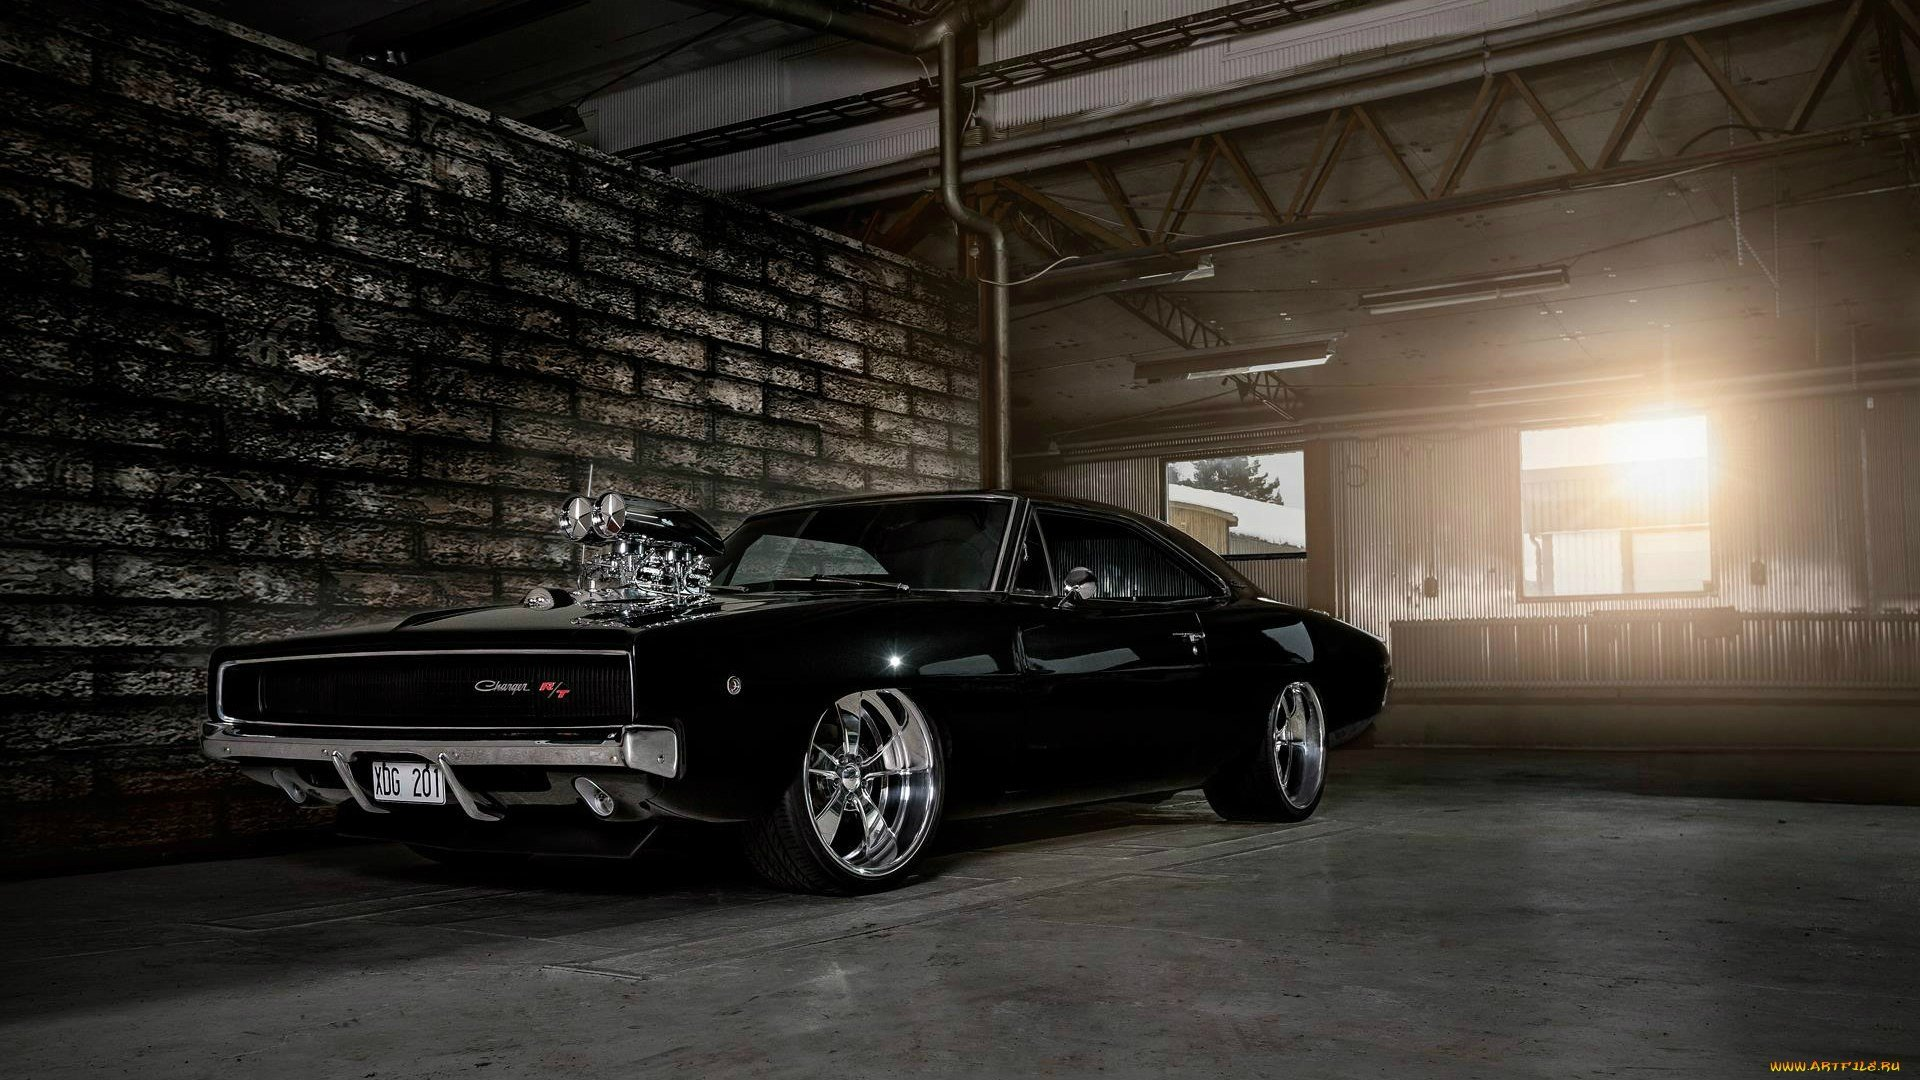 Dodge Charger 1968 wallpaper